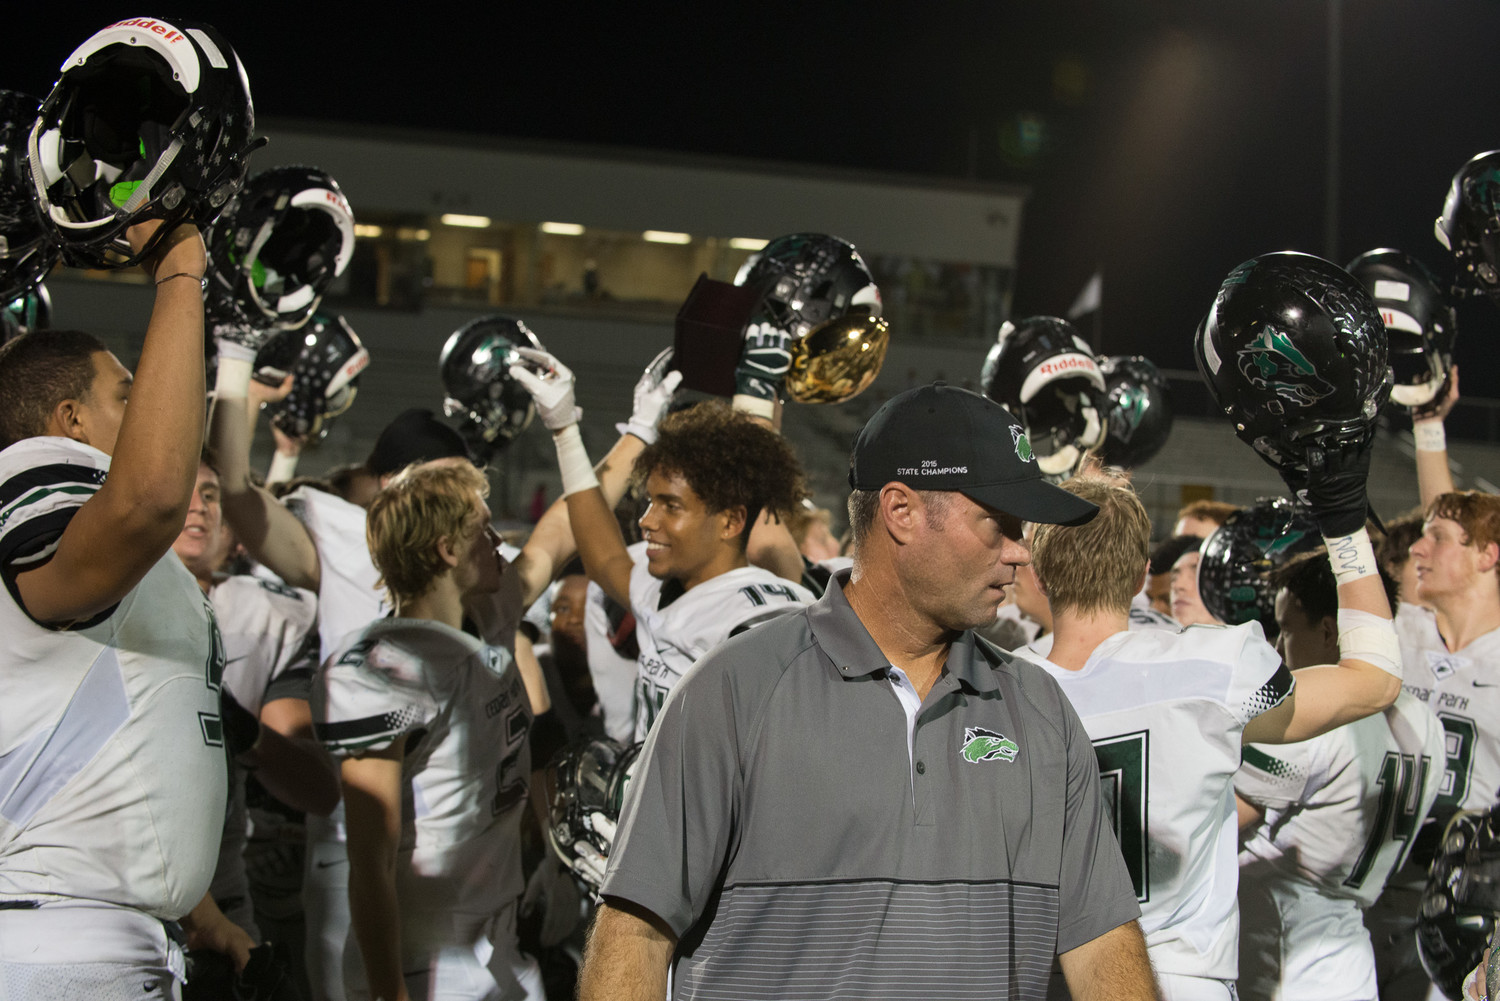 Cedar Park Timberwolves coach Carl Abseck as his team celebrates a bi-district playoff win over Magnolia on Nov. 17, 2017.